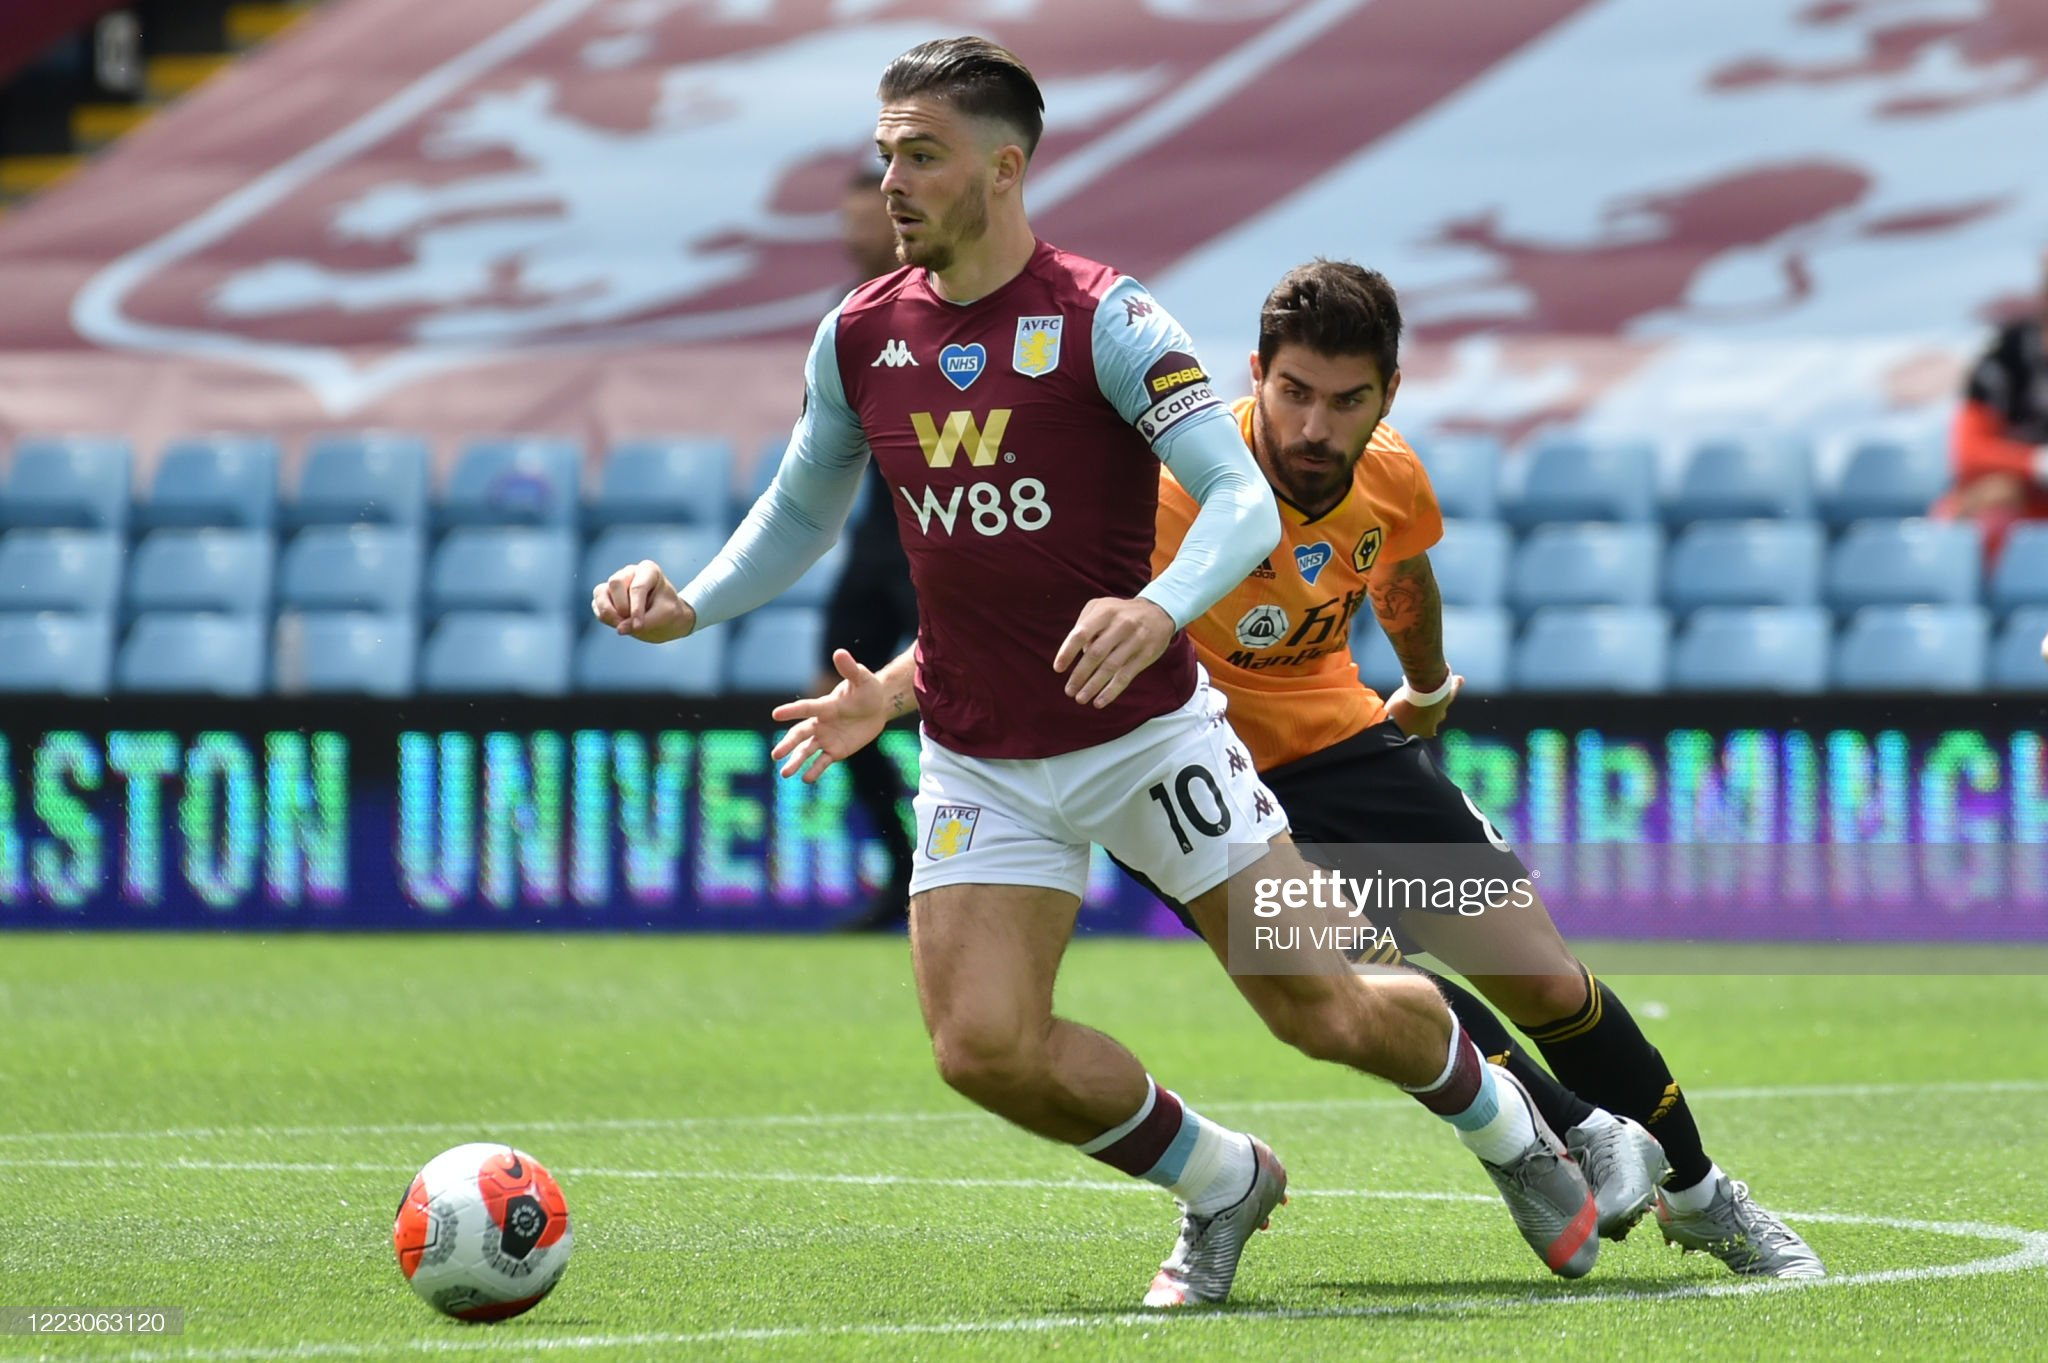 Wolves vs Aston Villa preview, prediction and odds